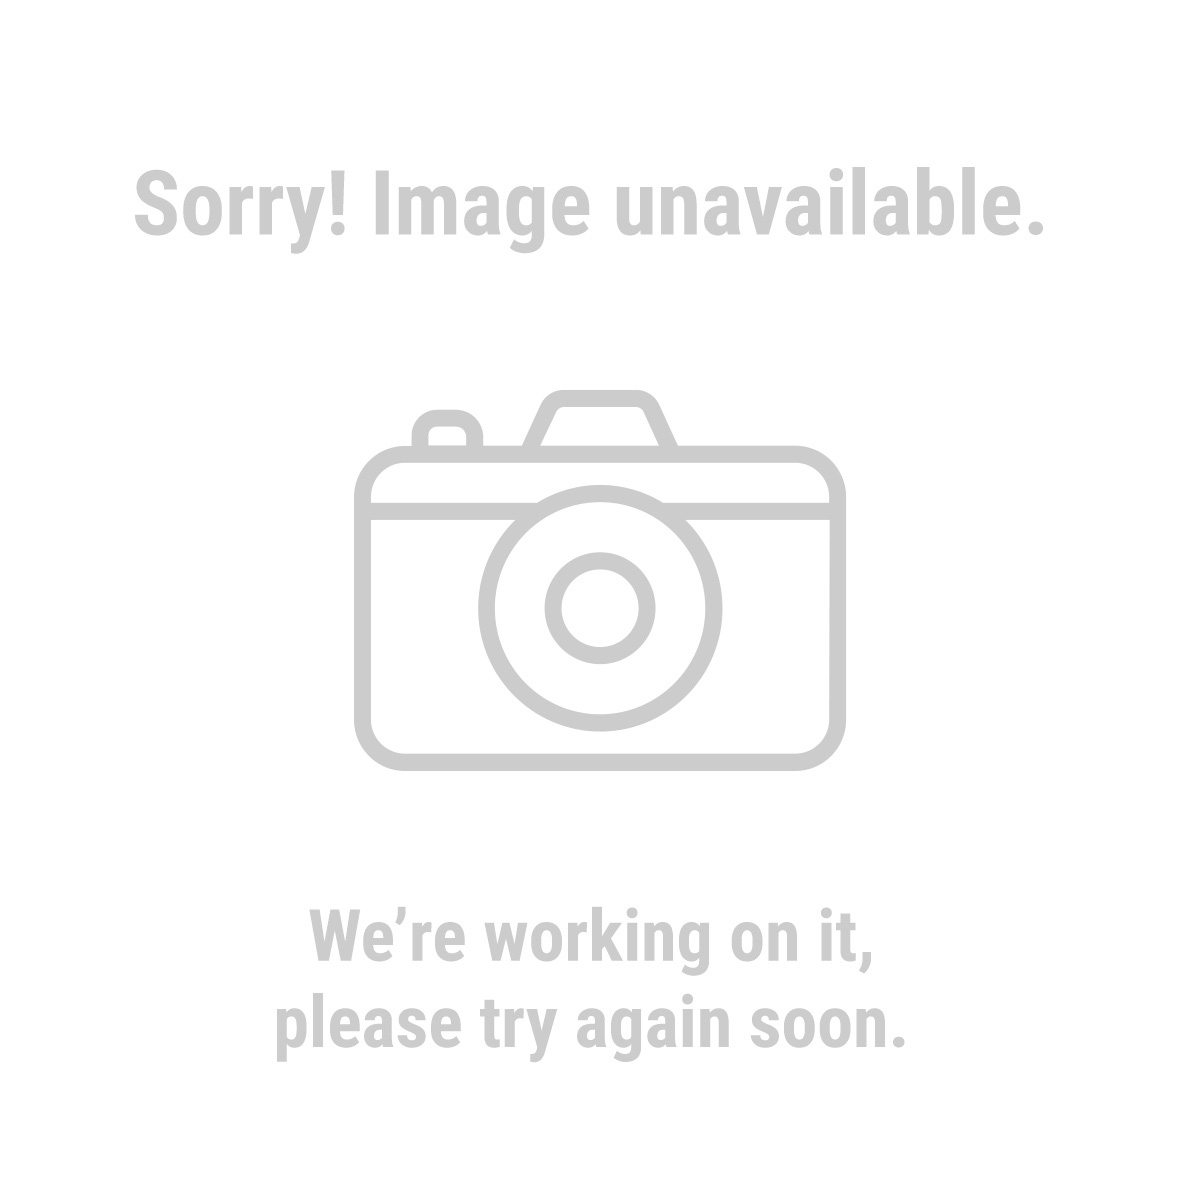 Harbor Freight Tile Saw Review